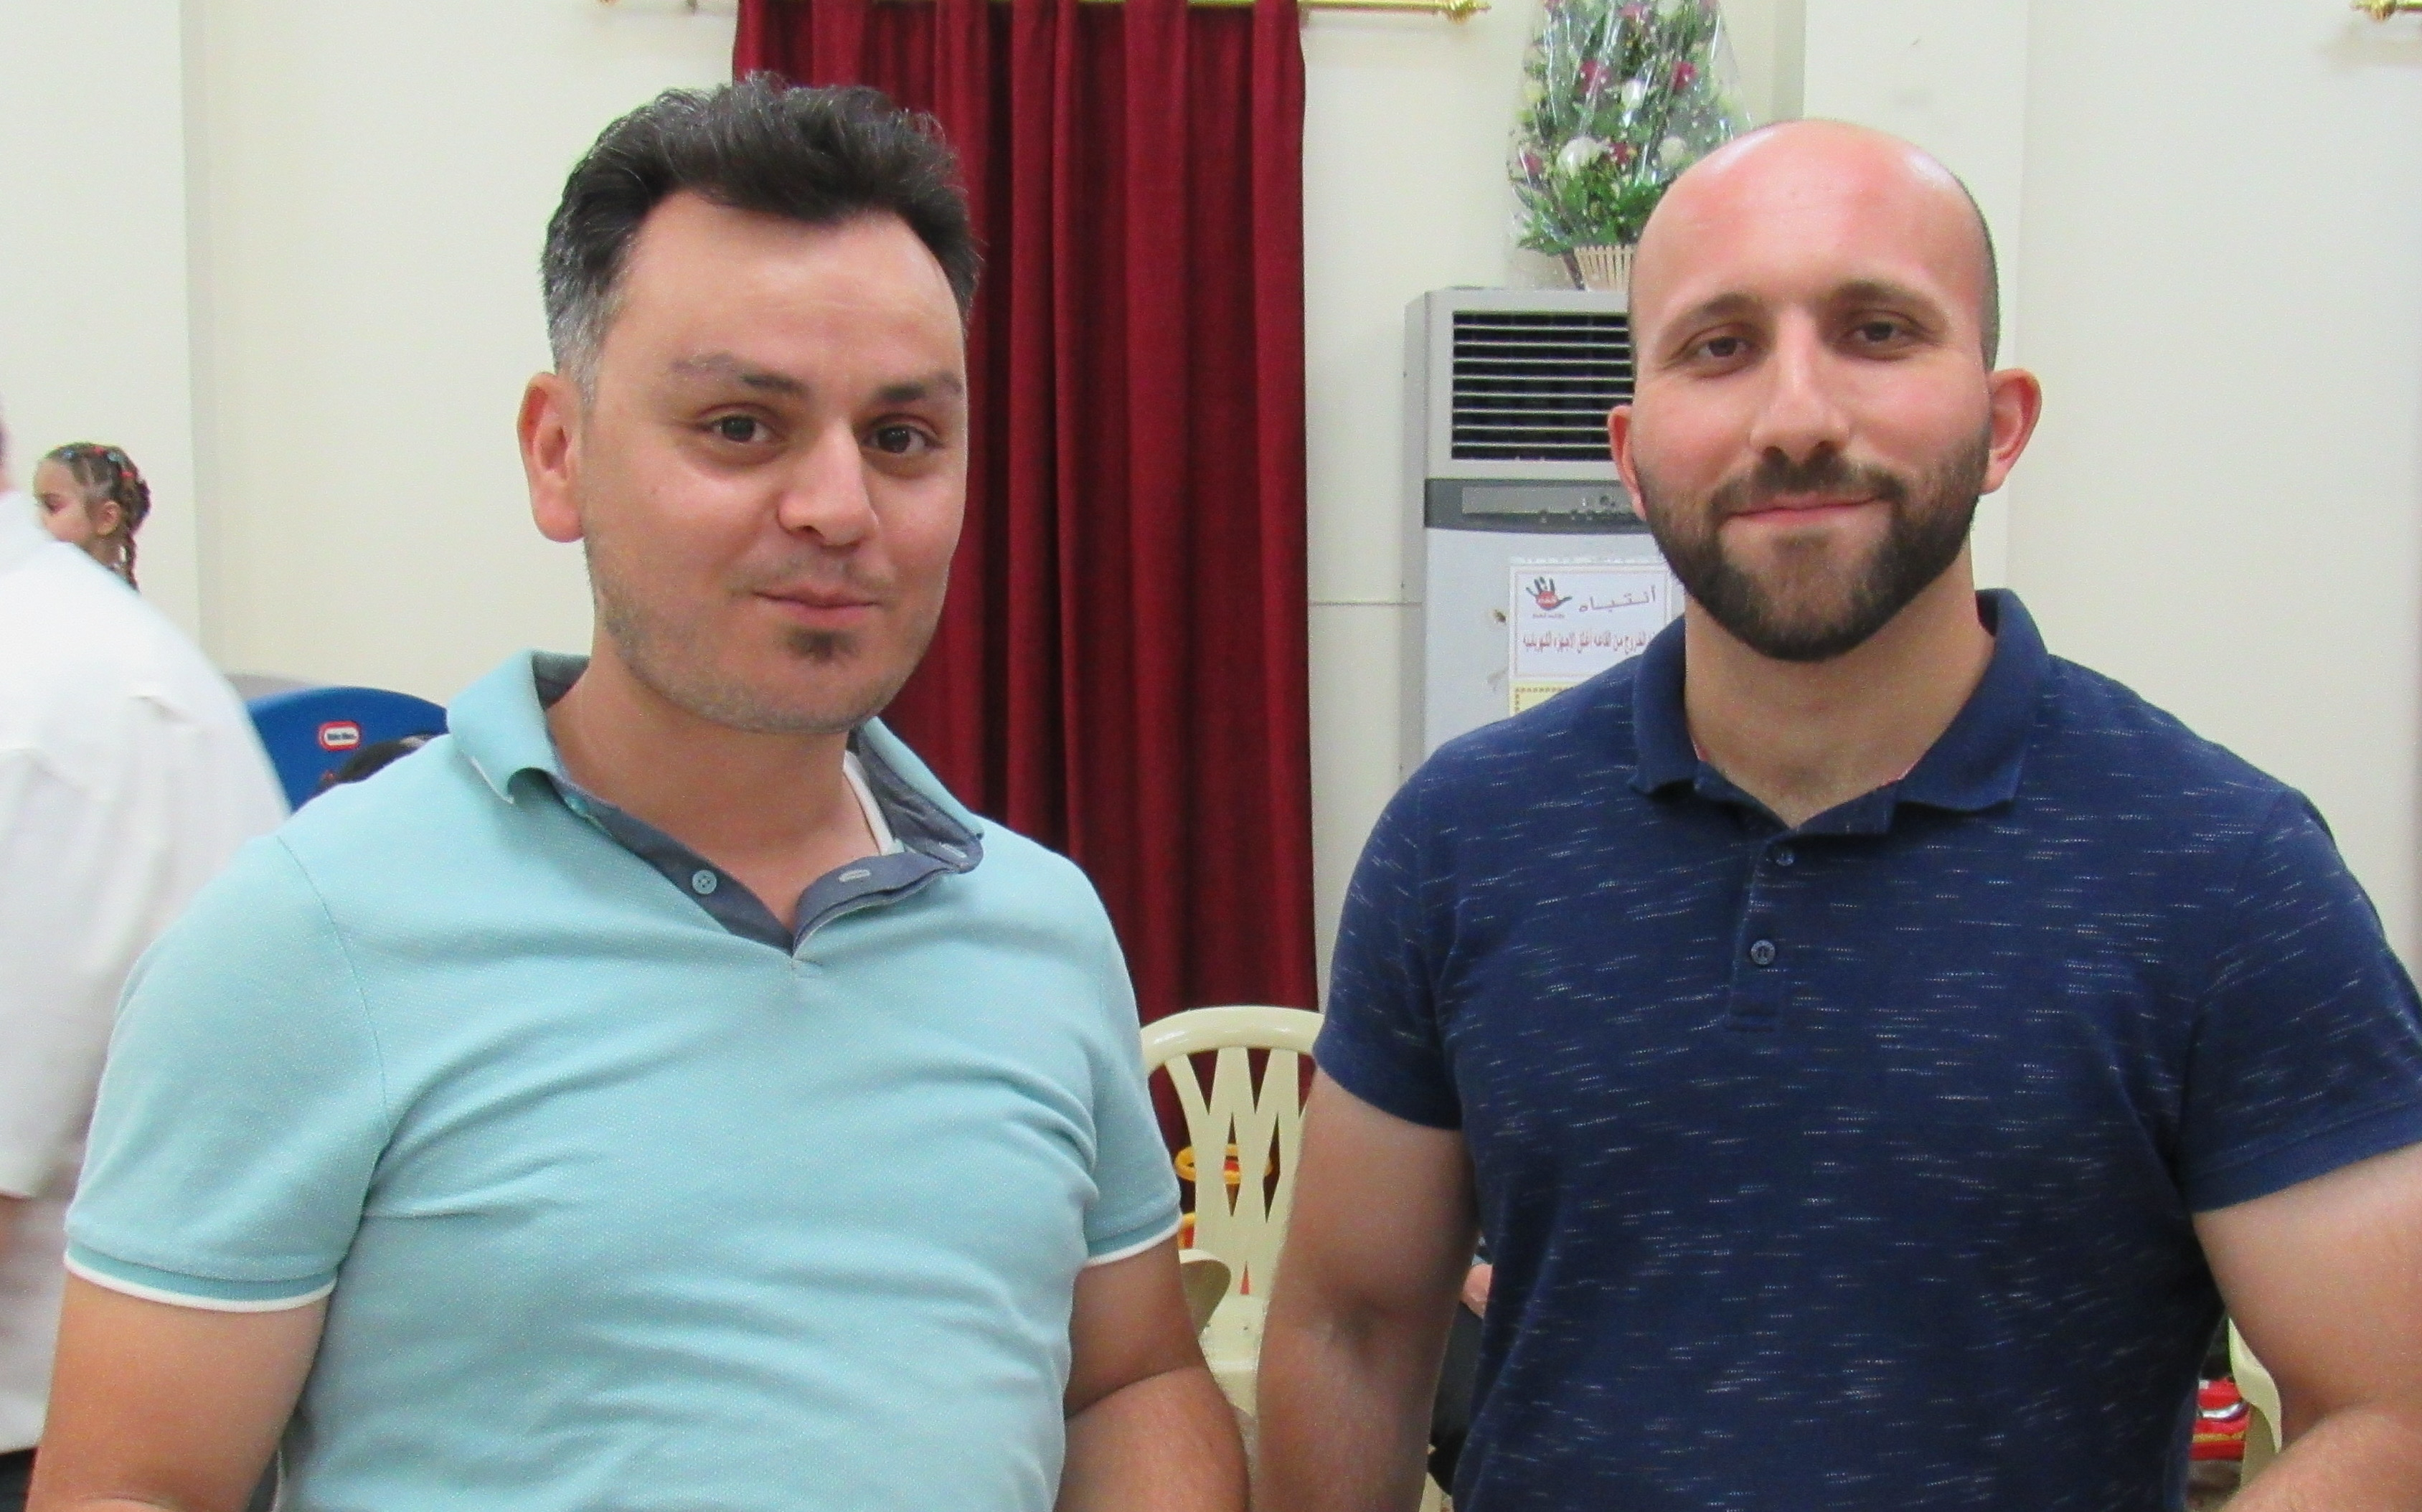 Marduk (left) and Bassem oversee the non-profit arm of the Presbyterian Church in Basra—allowing the church to serve the most economically vulnerable in the city through providing drinkable water and reliable, safe housing.